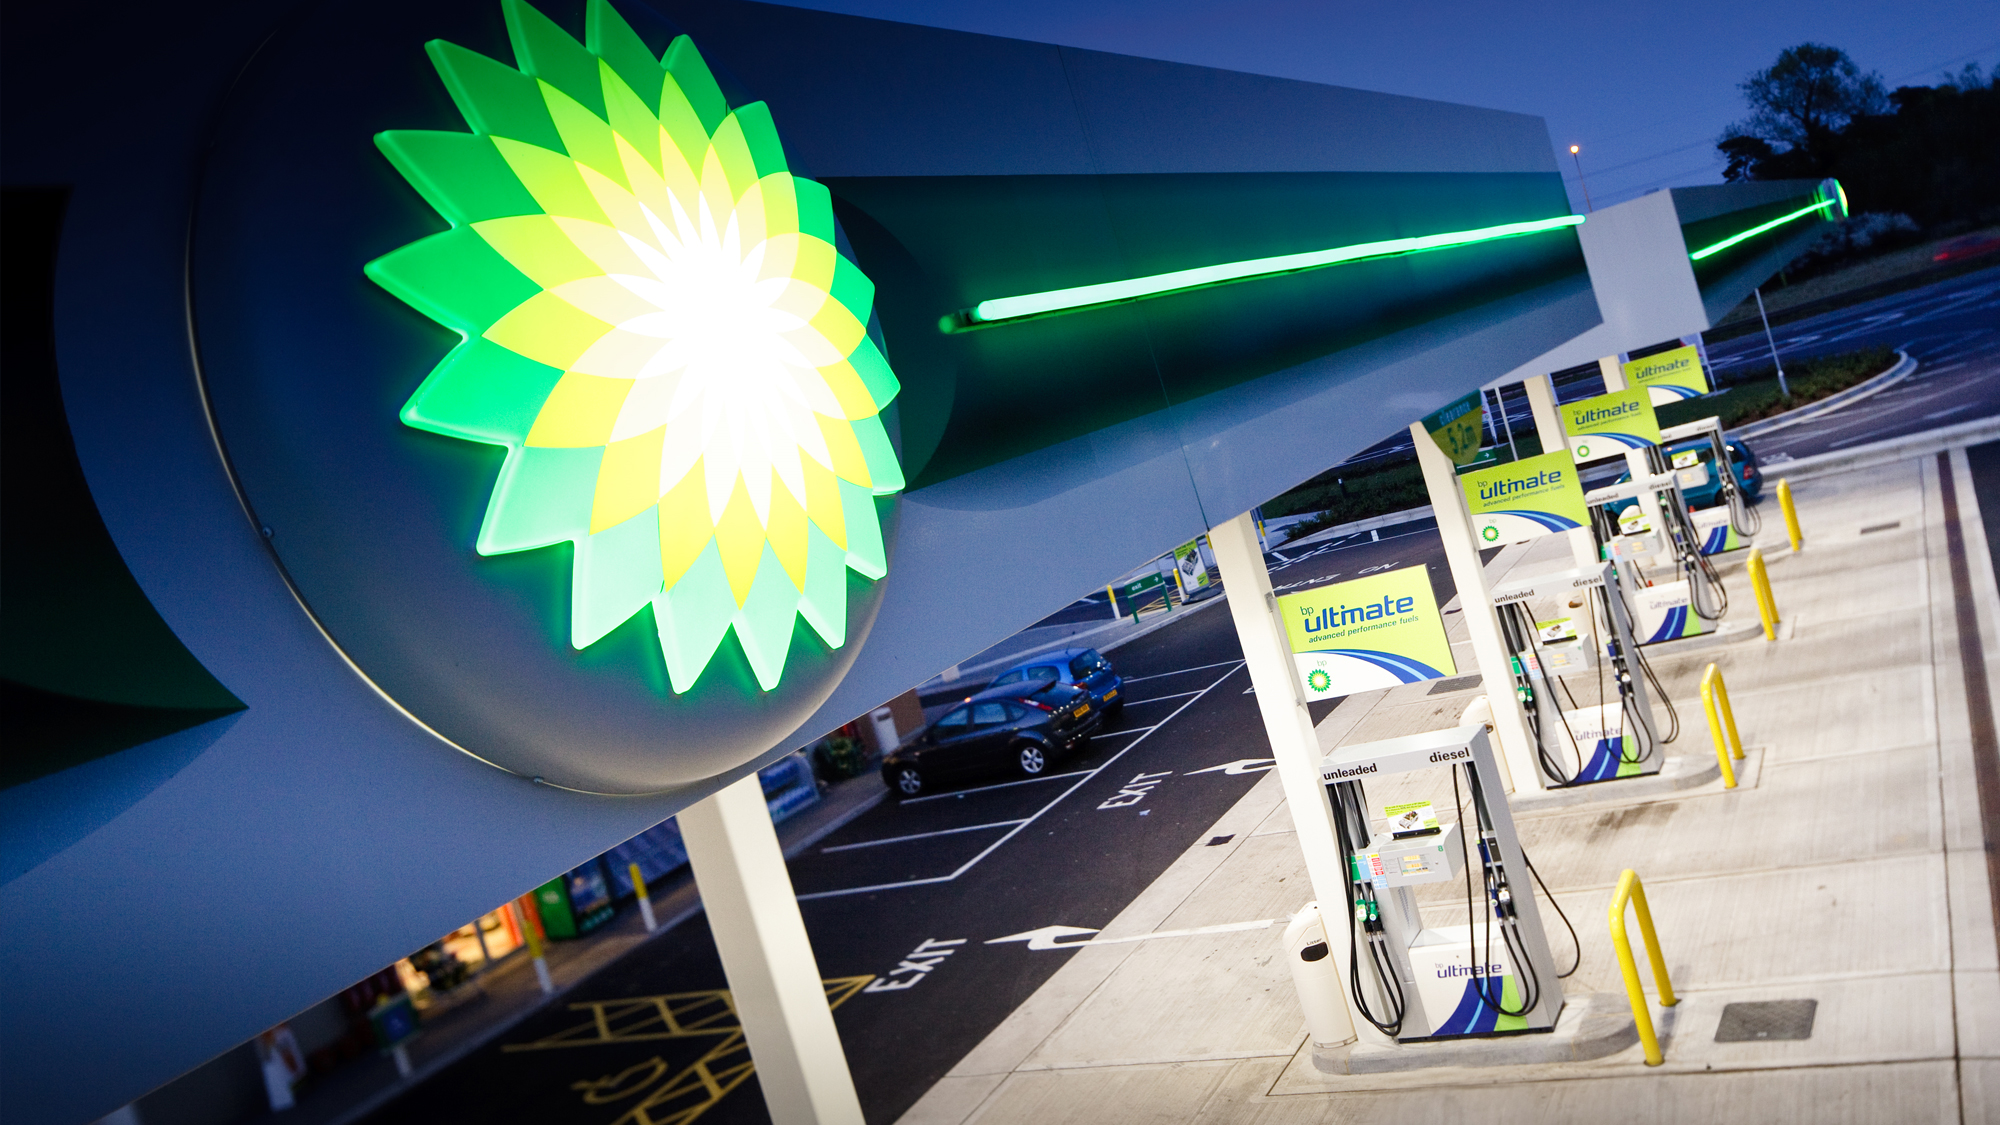 BP unleaded fuel